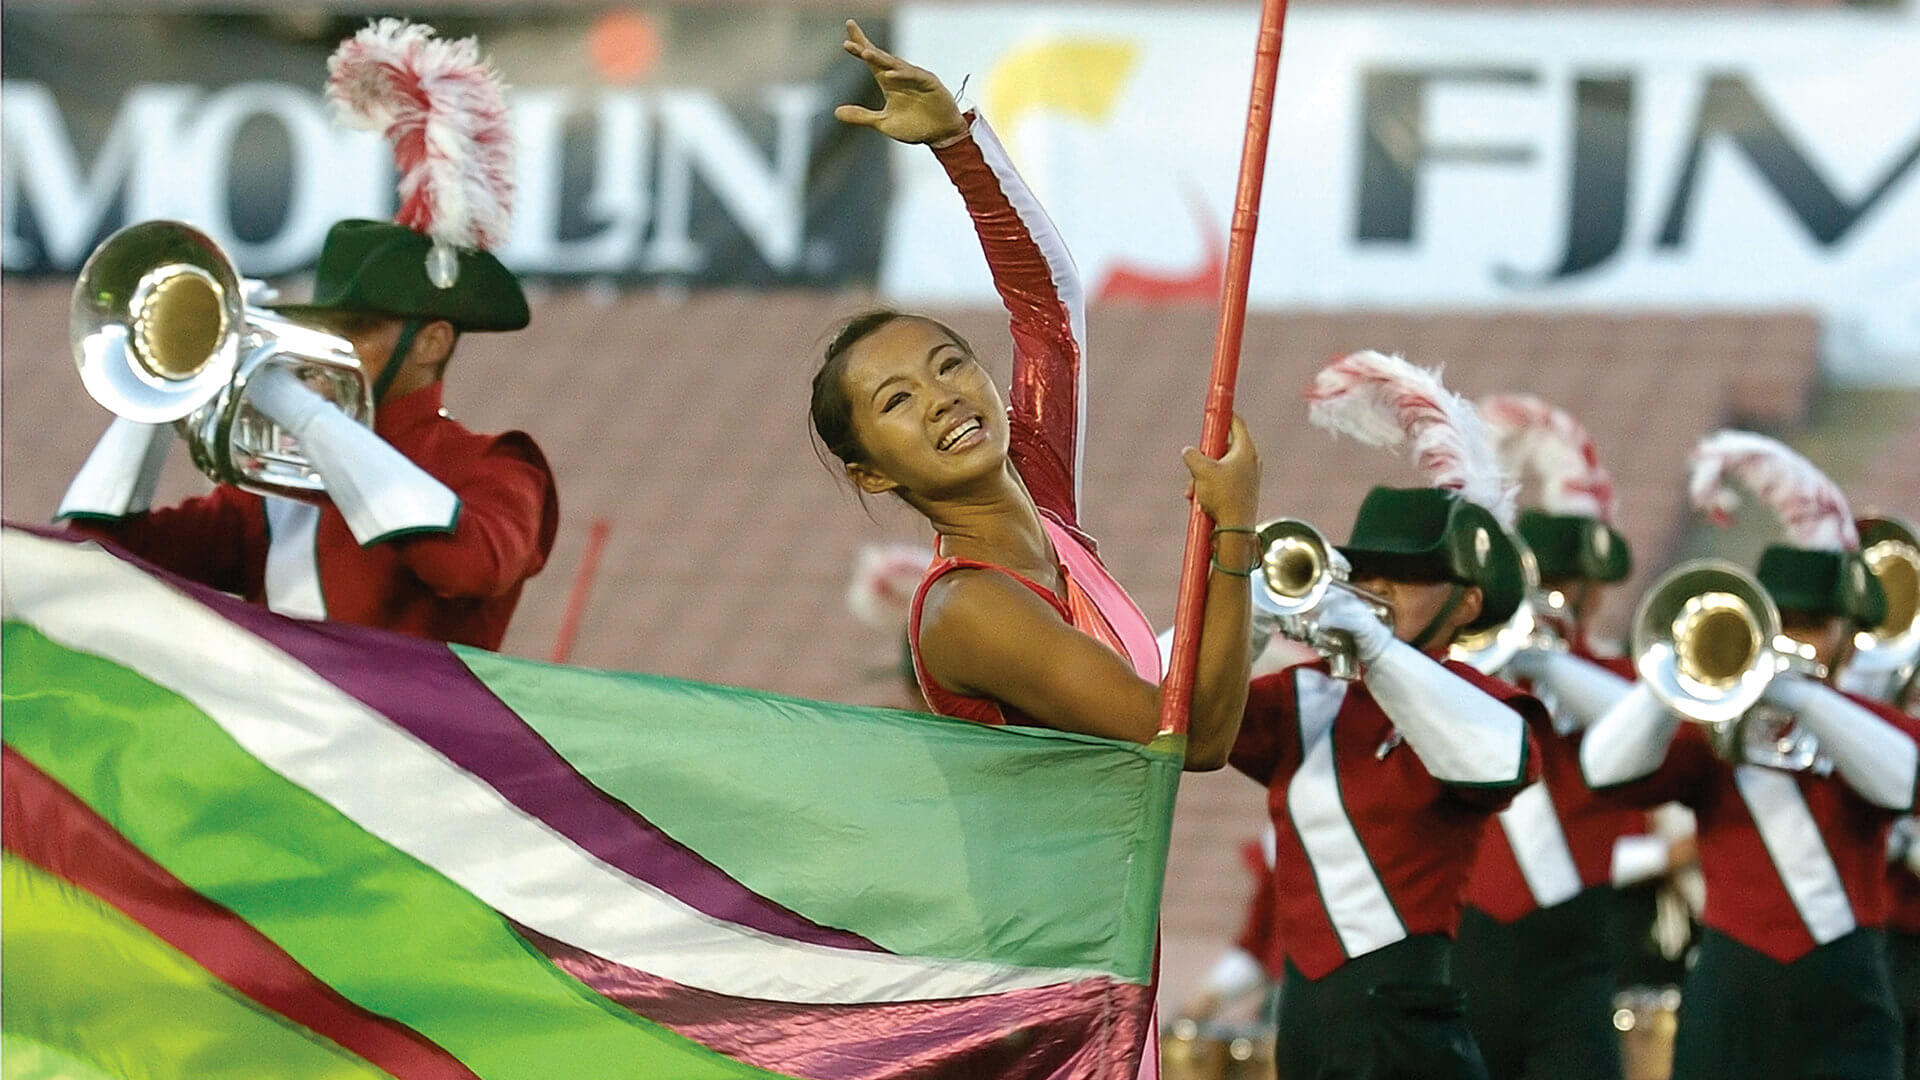 Spotlight of the Week: 2007 Santa Clara Vanguard